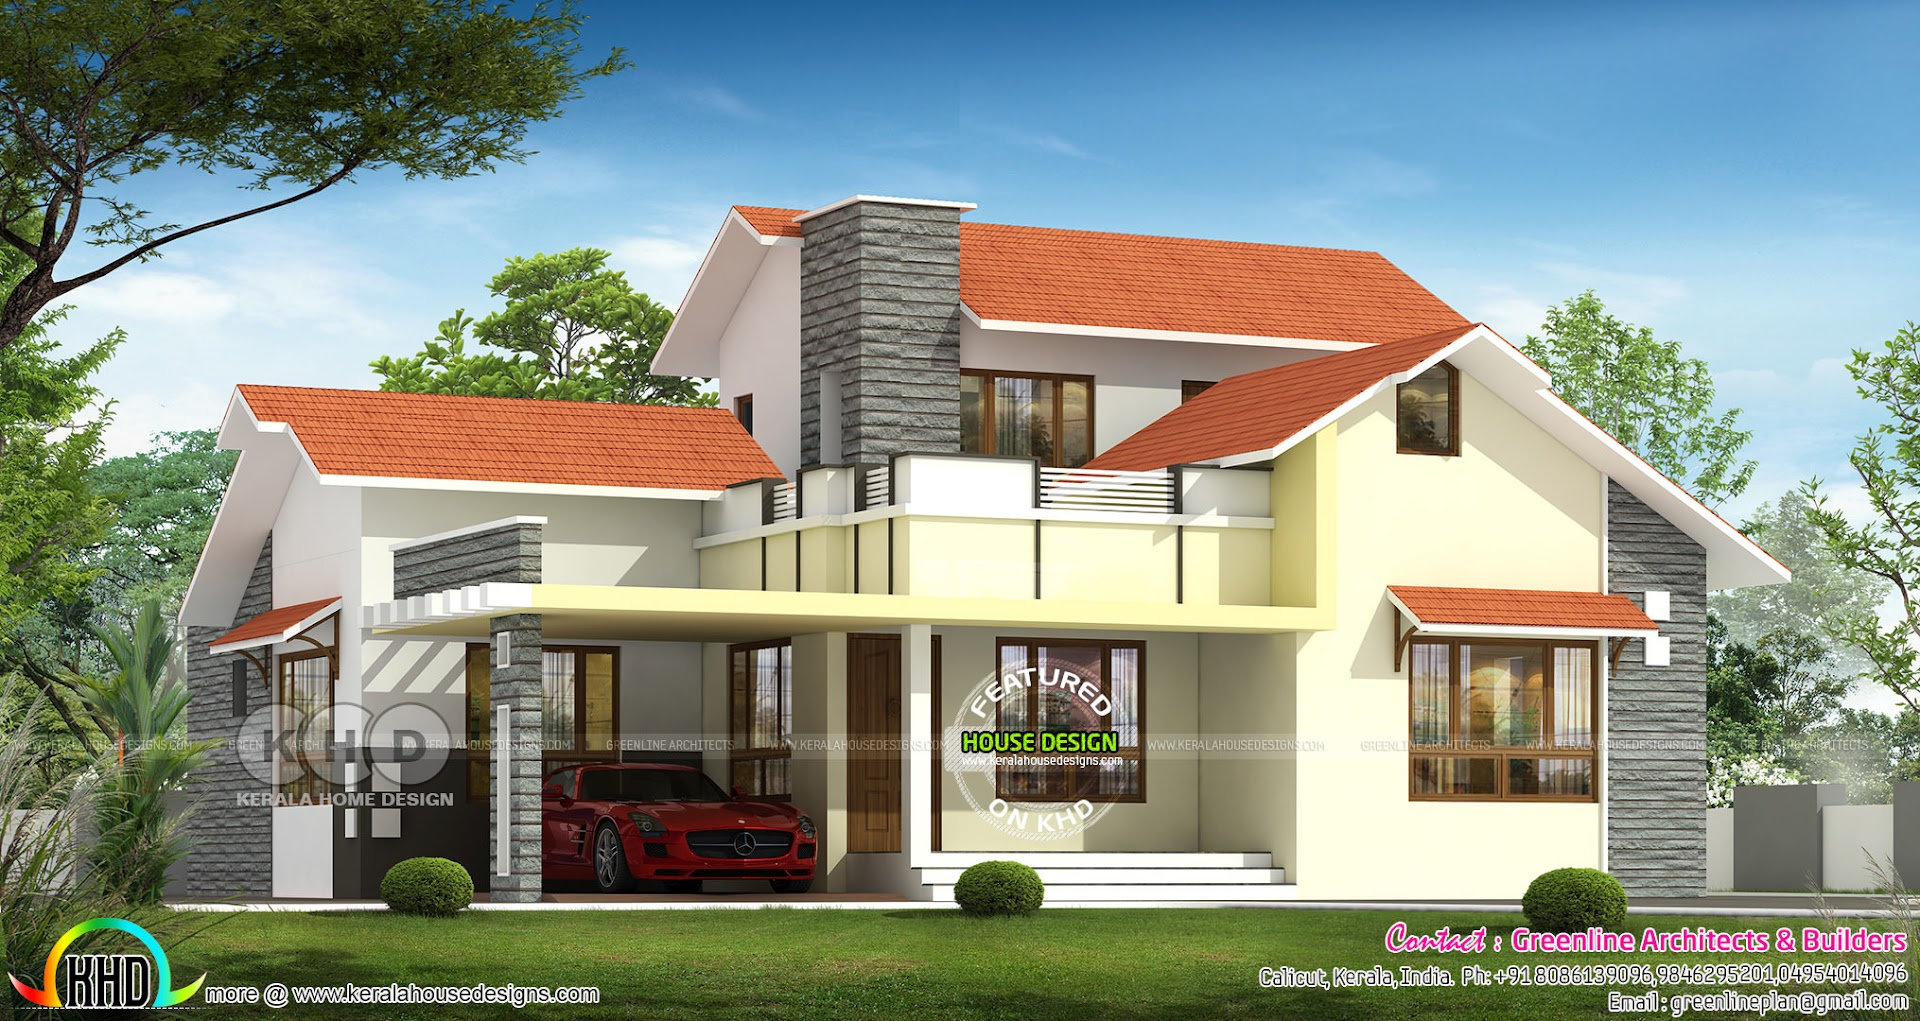 1670 sq-ft ₹25 Lakhs Budget friendly House - Kerala home ...